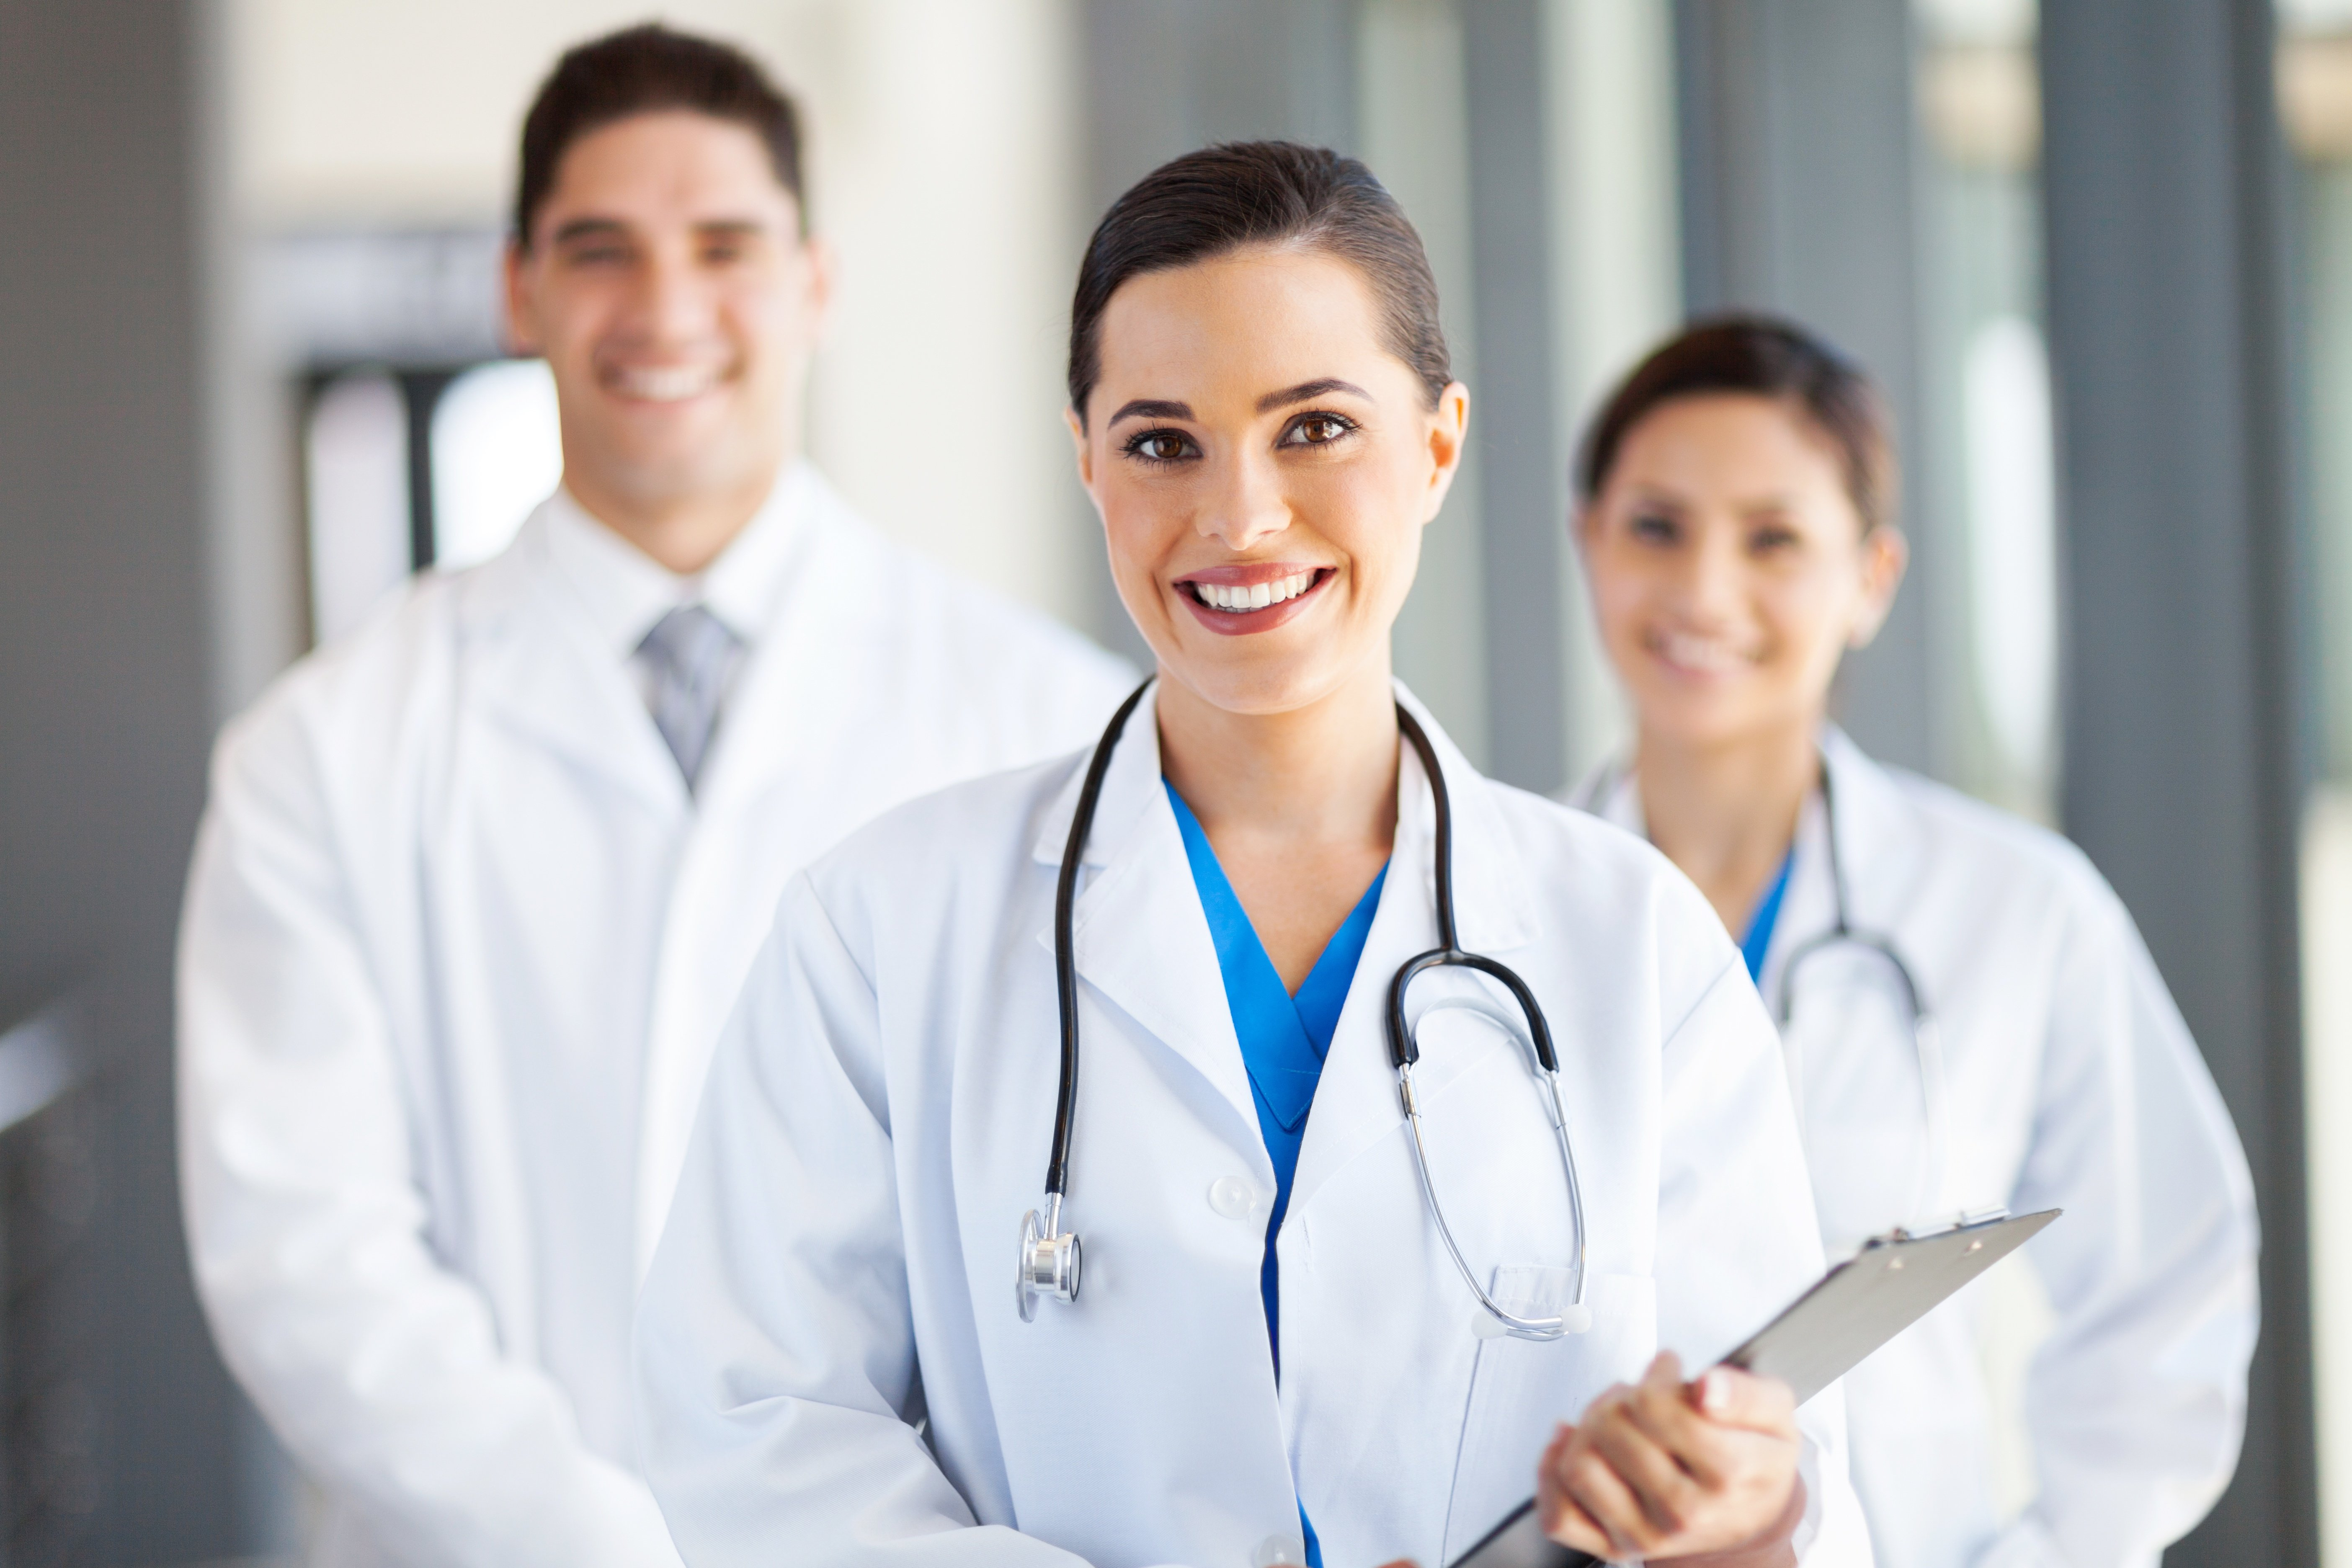 5 Simple Ways to Improve Your Medical Practice's Reputation